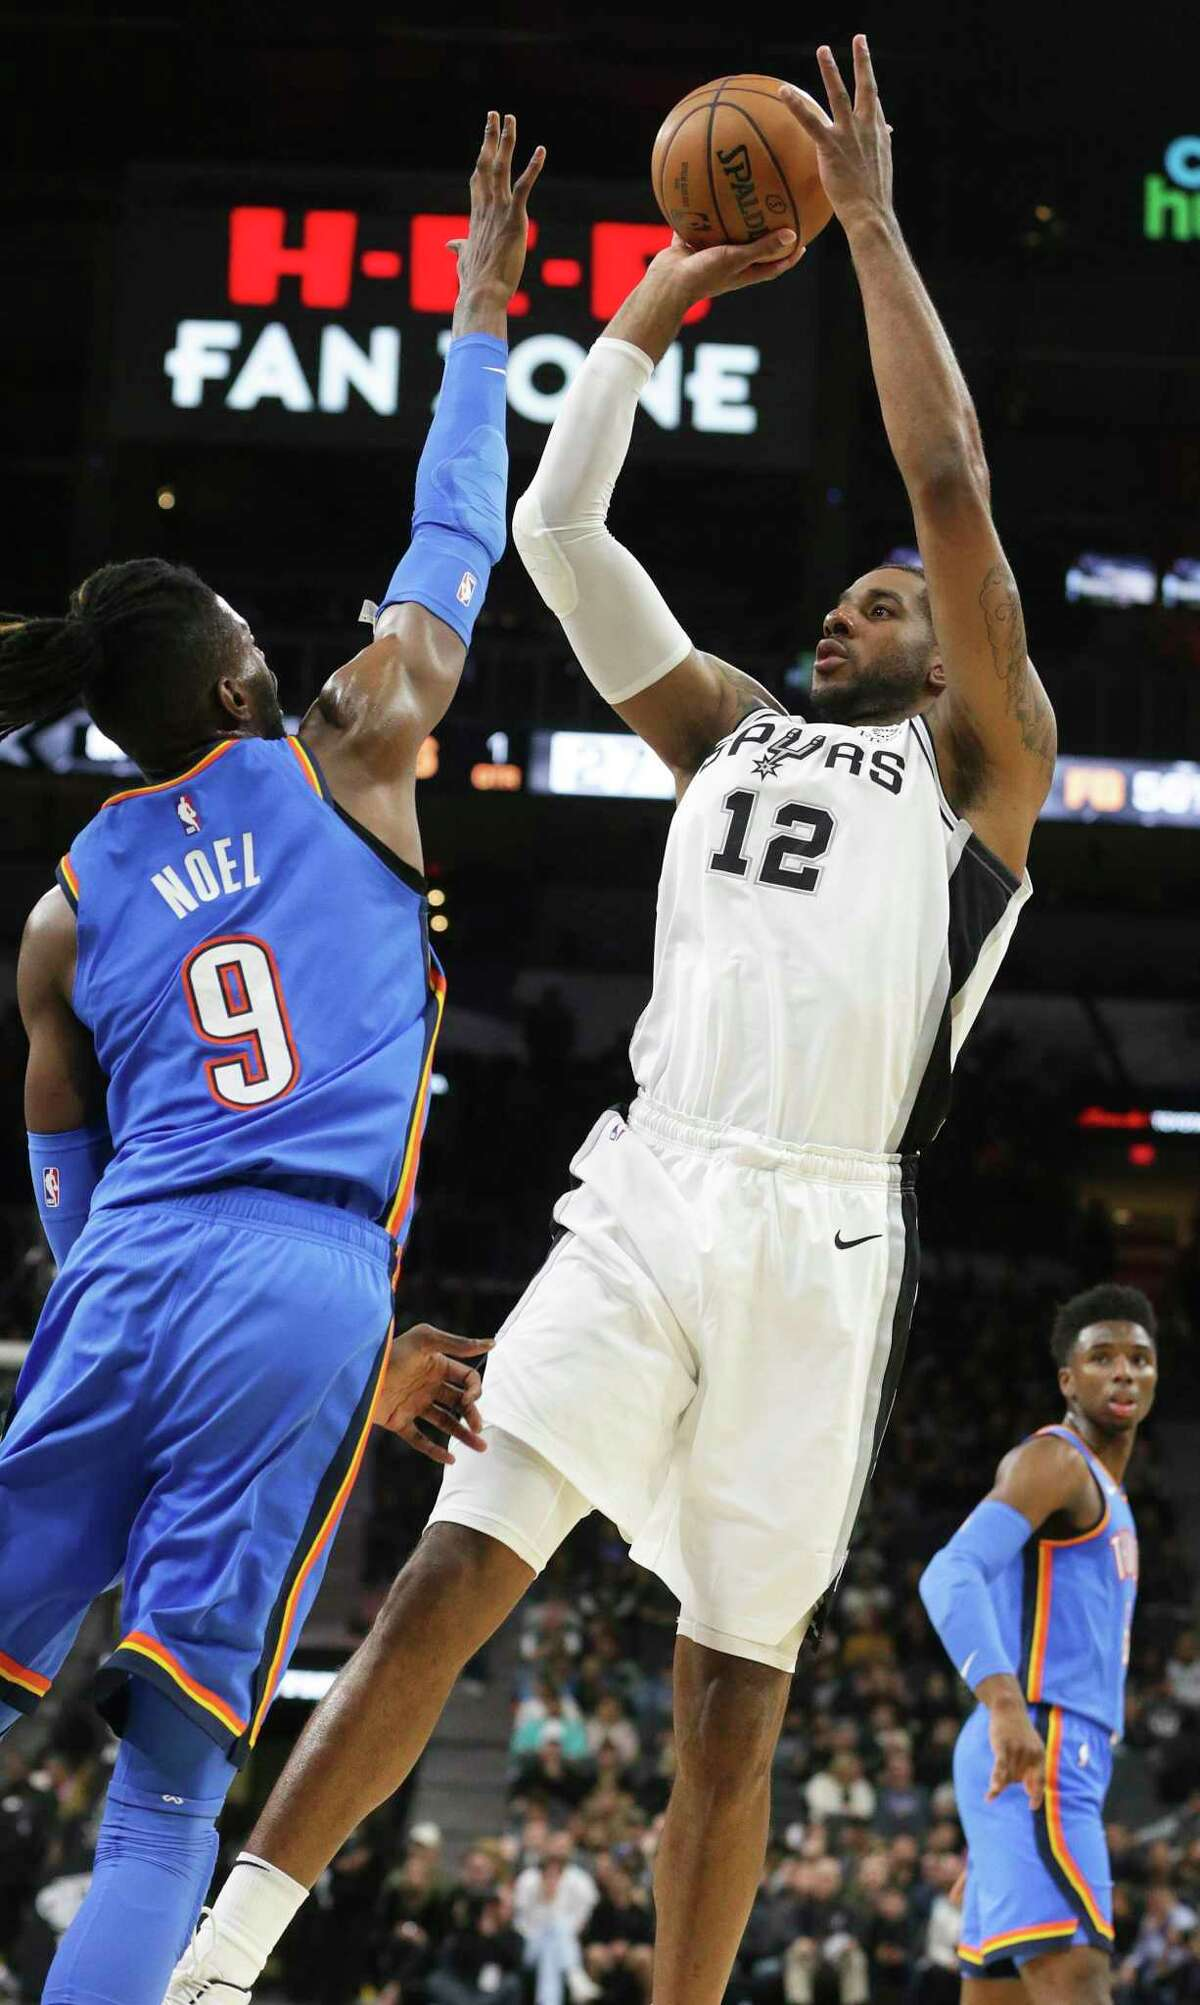 LaMarcus Aldridge shoots over Oklahoma City's Nerlens Noel in the first half. Aldridge went 19 of 23 from the field in his best performance of the season.